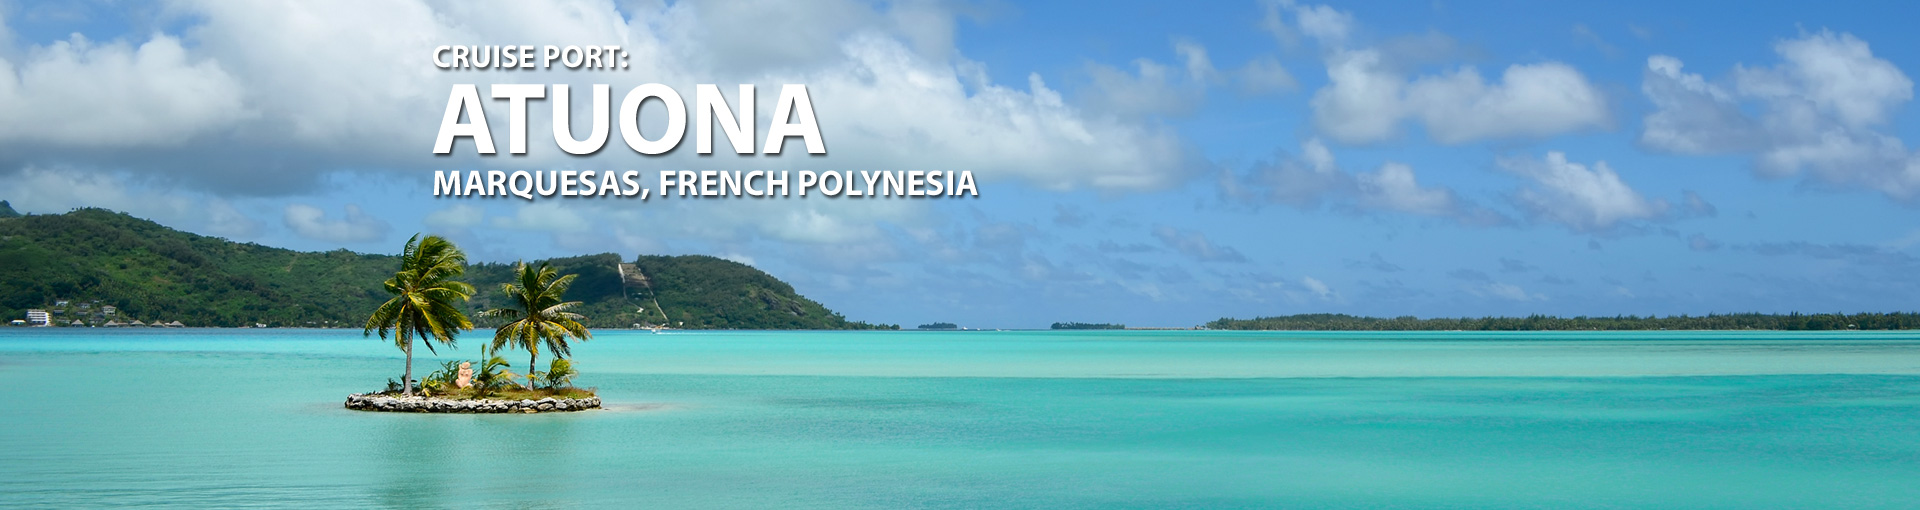 Cruises to Atuona, Marquesas, French Polynesia